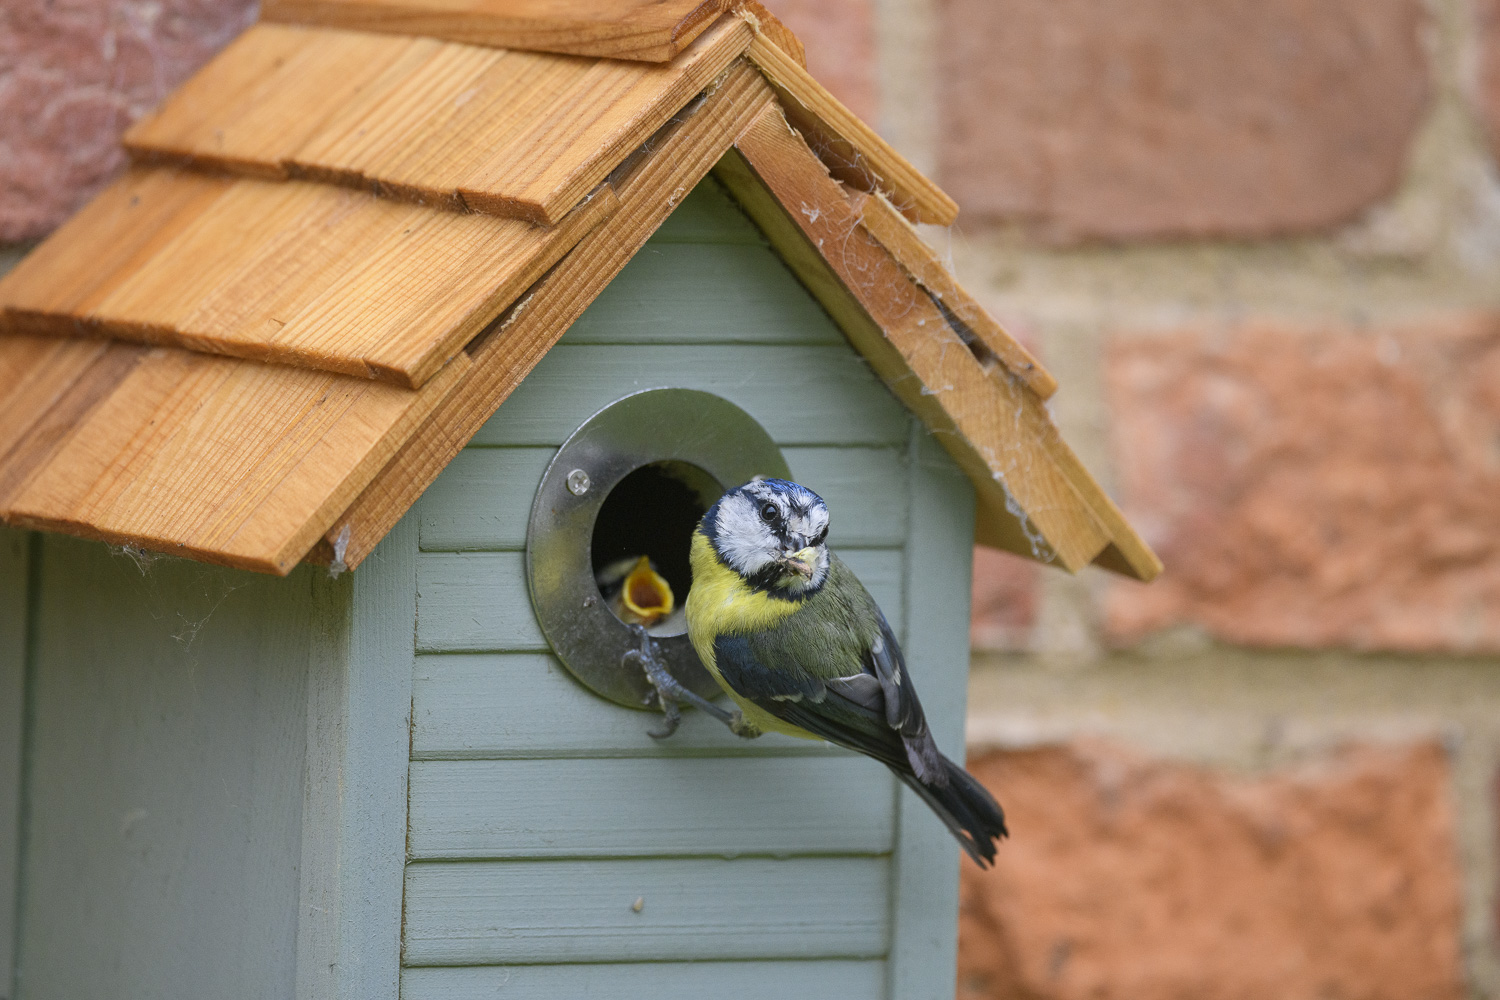 Adult Blue tit feeding young in nest box on house.